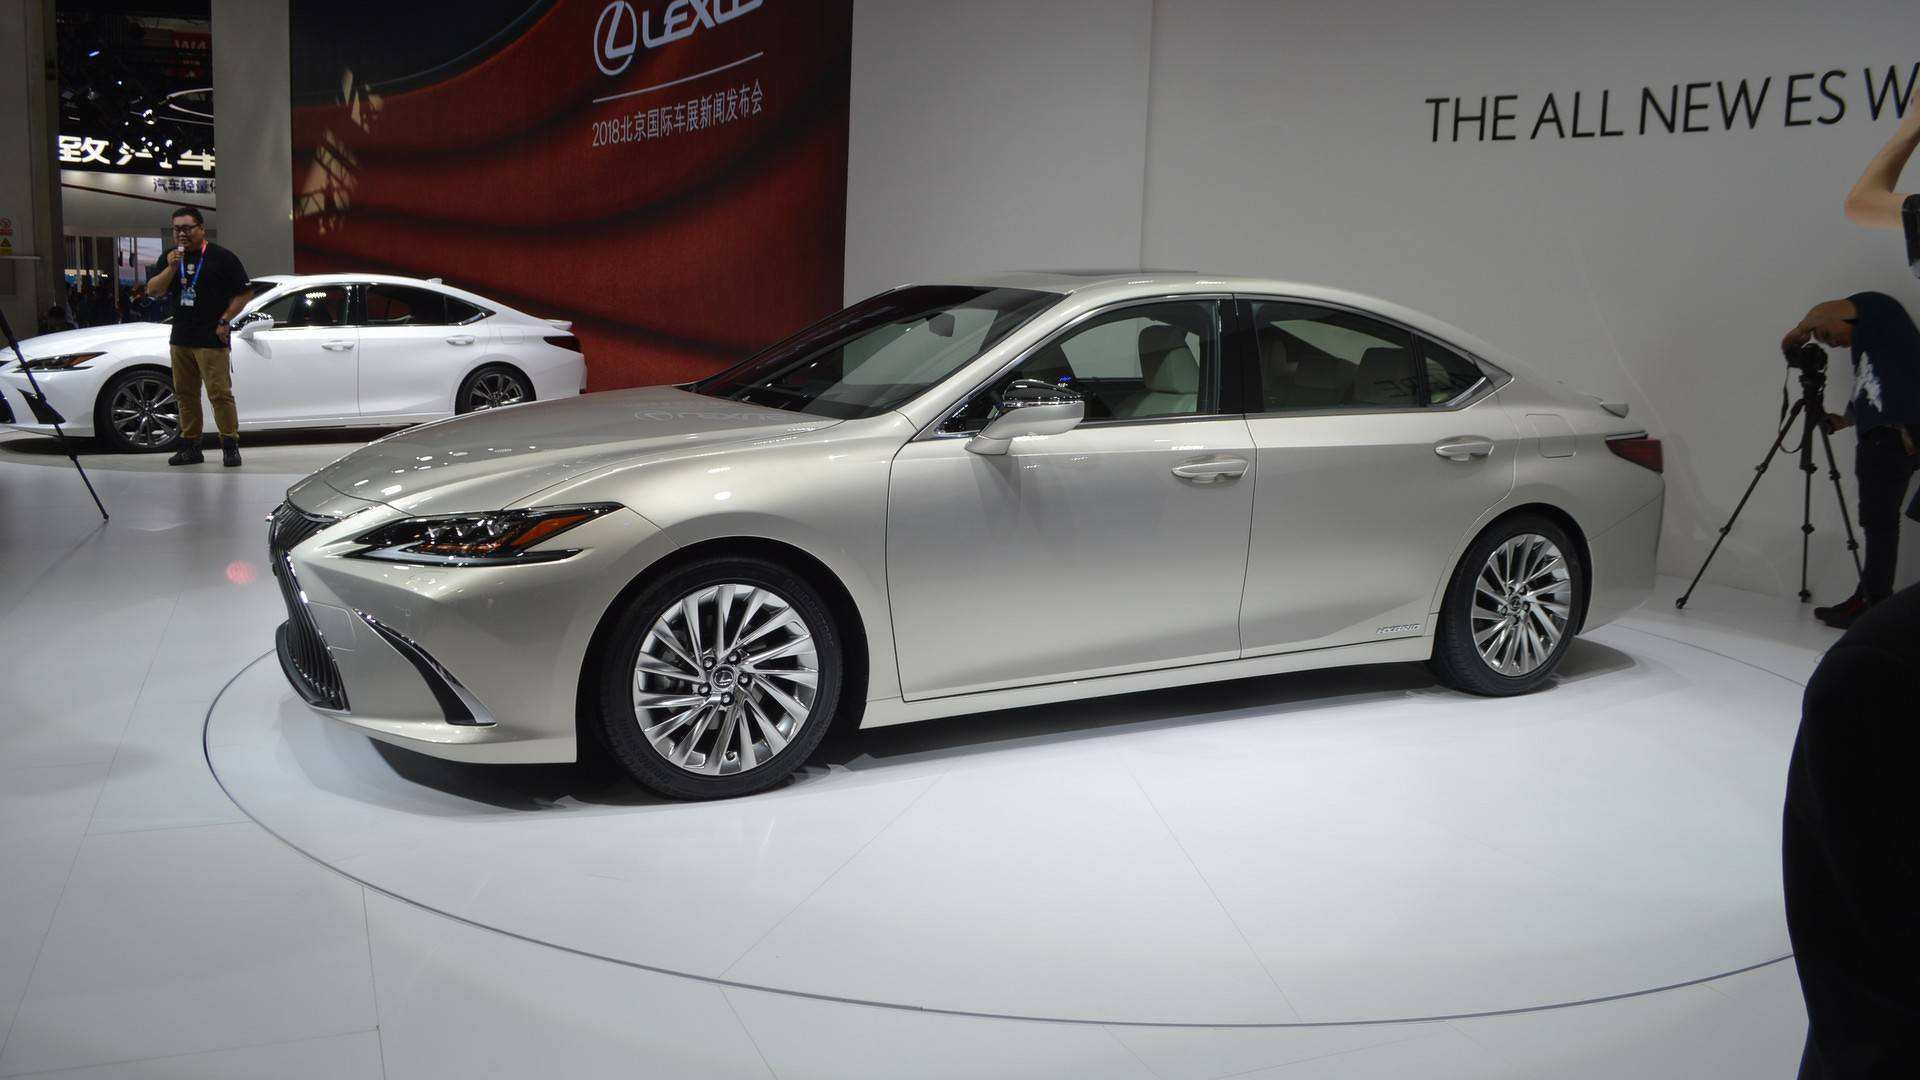 56 Gallery of The 2019 Lexus Es Hybrid Price Review And Price Speed Test for The 2019 Lexus Es Hybrid Price Review And Price